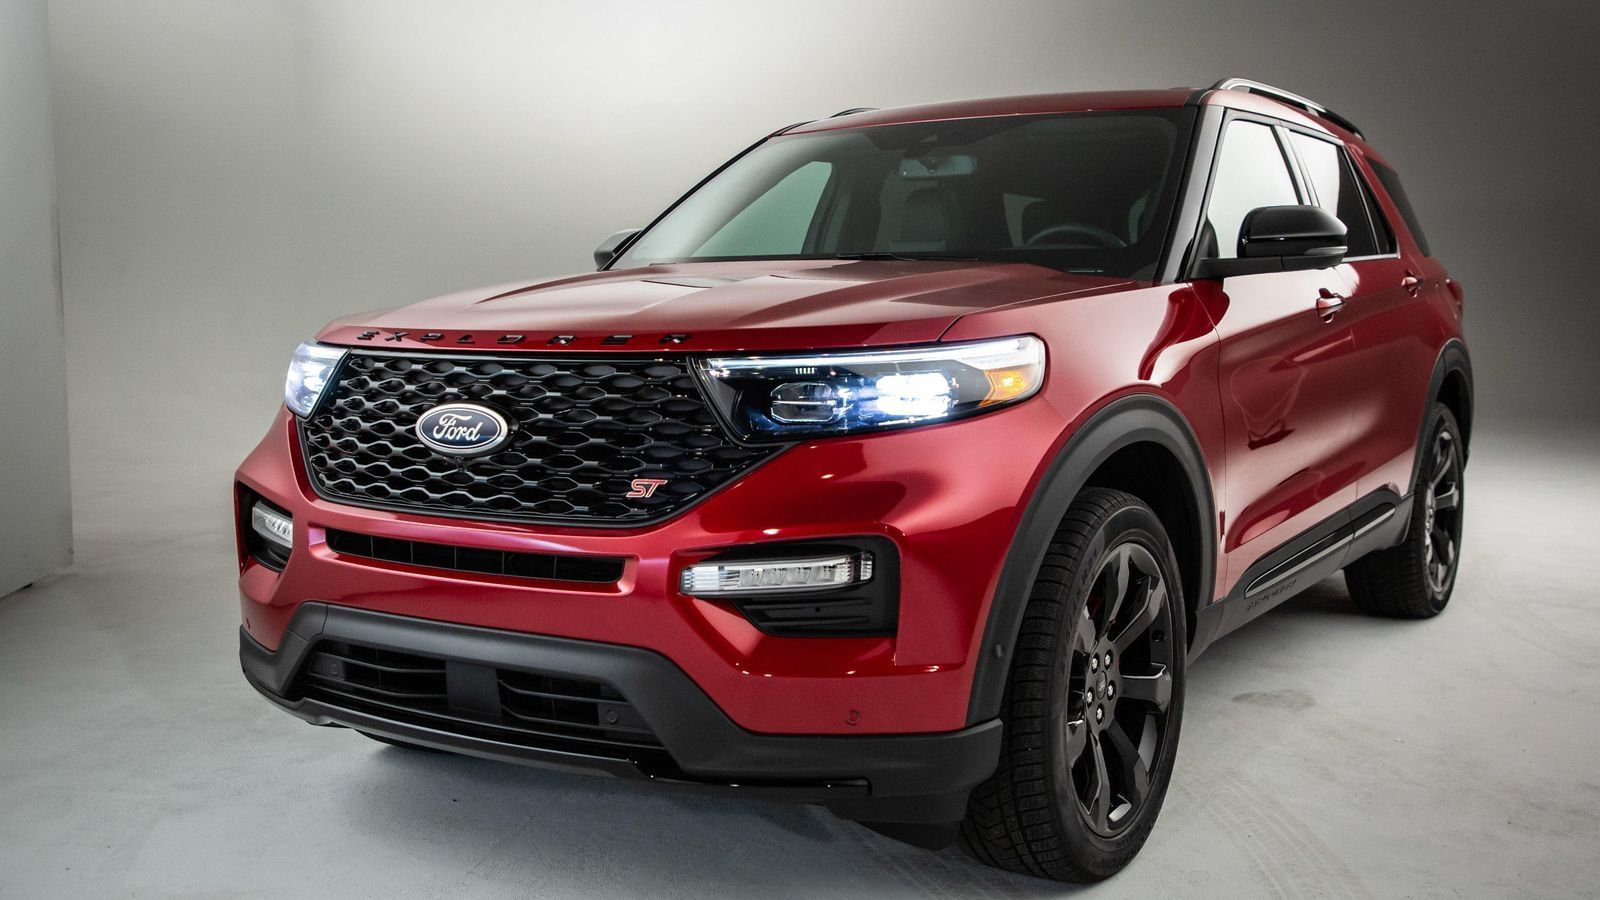 Ford has actually revealed the 2020 Explorer SUV, the next